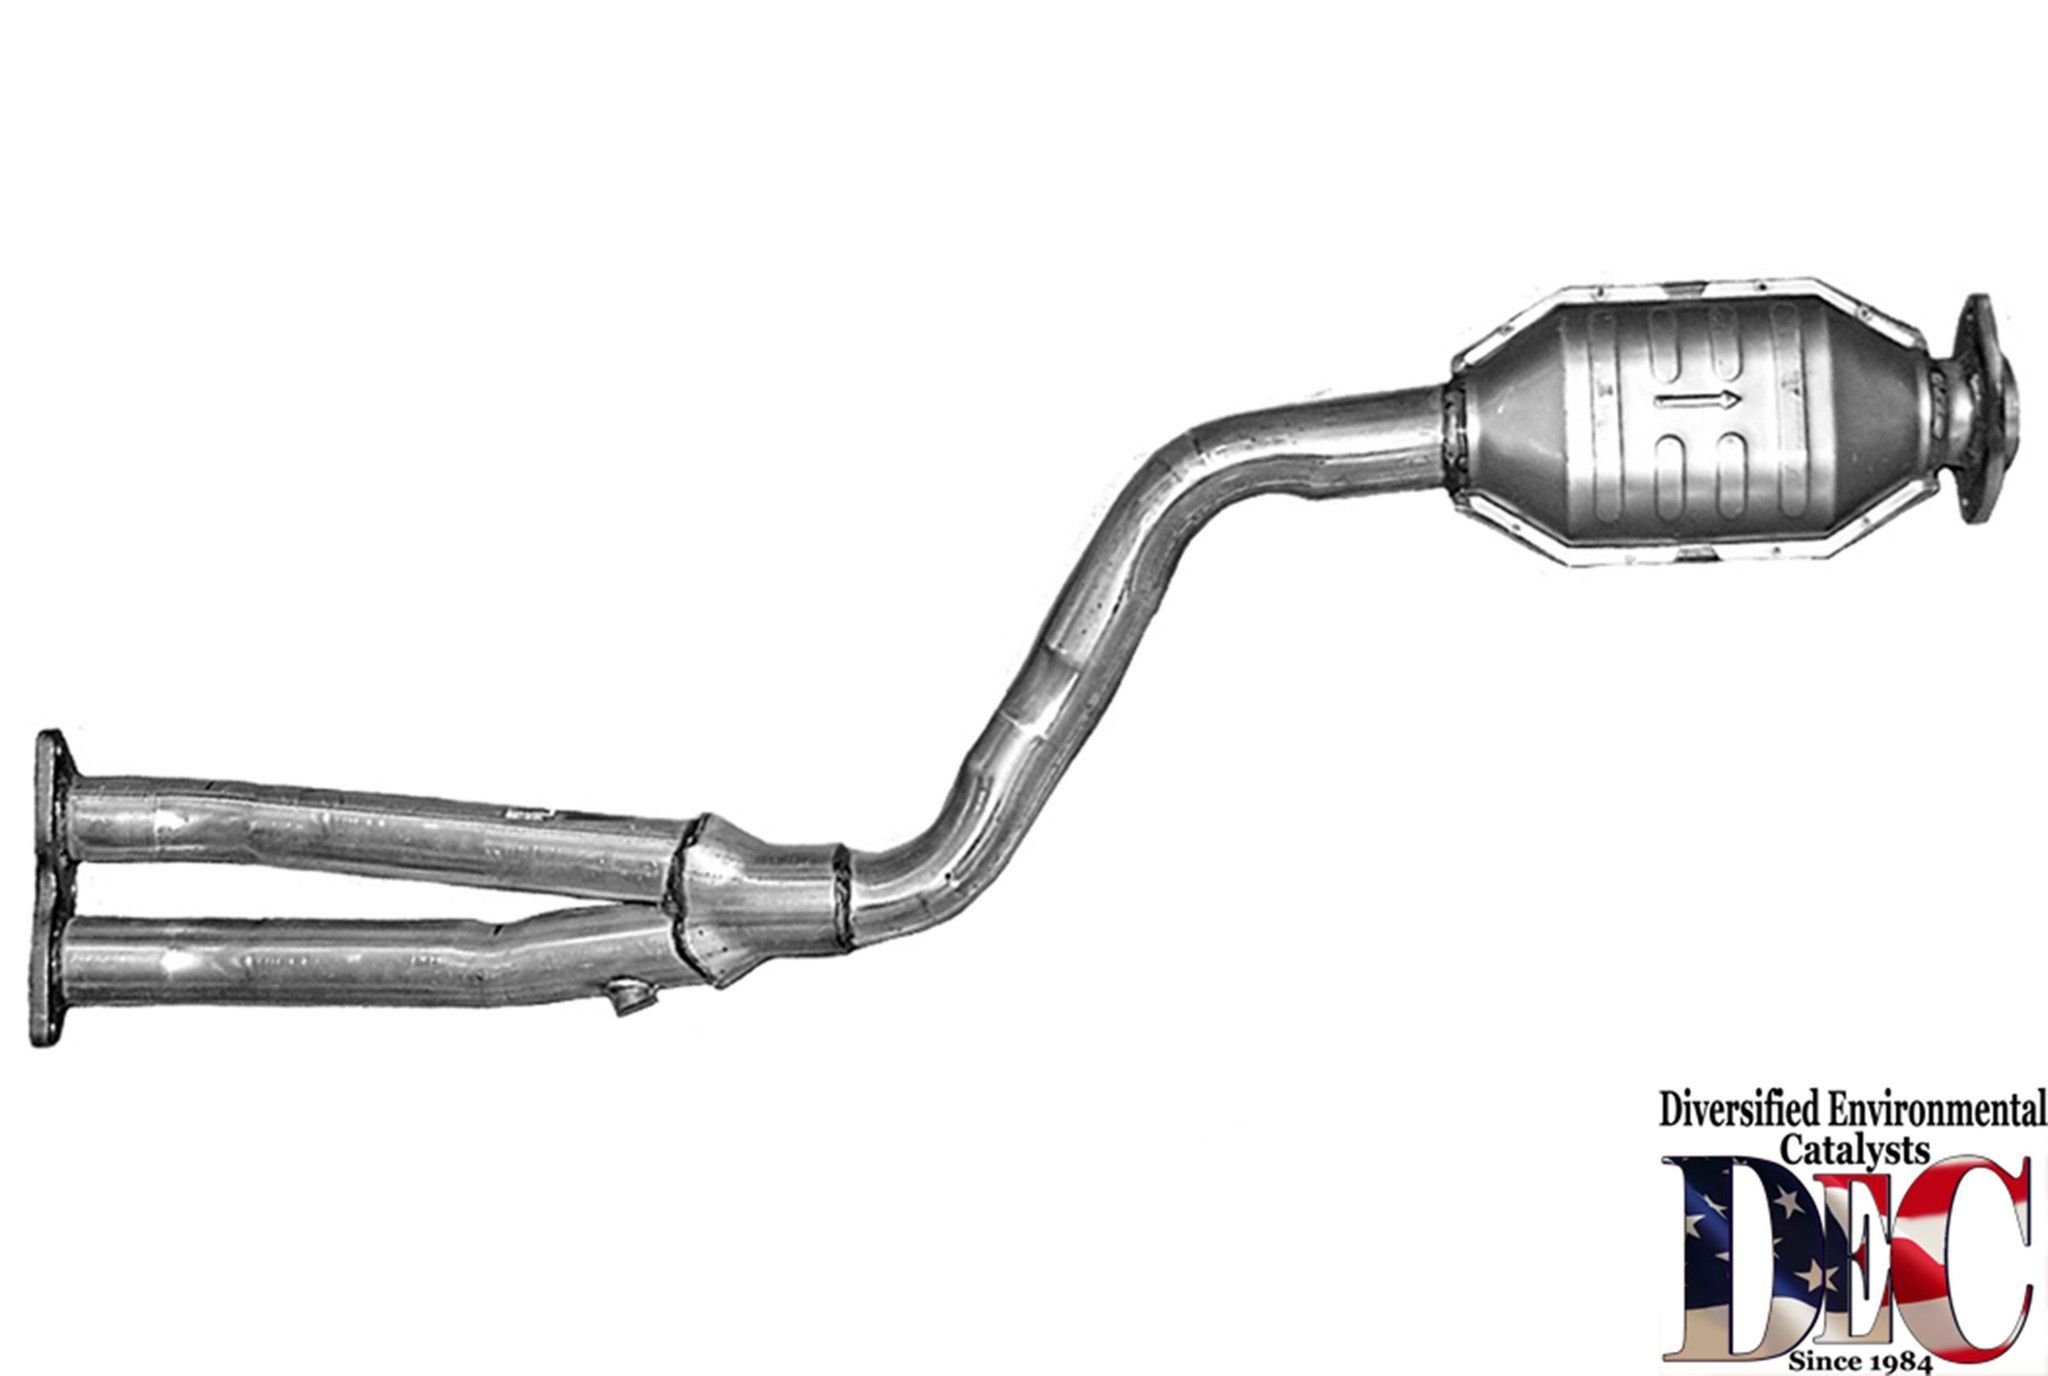 Lexus Gs300 Catalytic Converter Replacement Bosal Dec Davico 2001 Gs 300 Engine Scematic Diagram Rear 6 Cyl 30l Lx94623 Family Number 1tyxv030ffe Tier Lev Lev1 Eo D 280 83 Overall